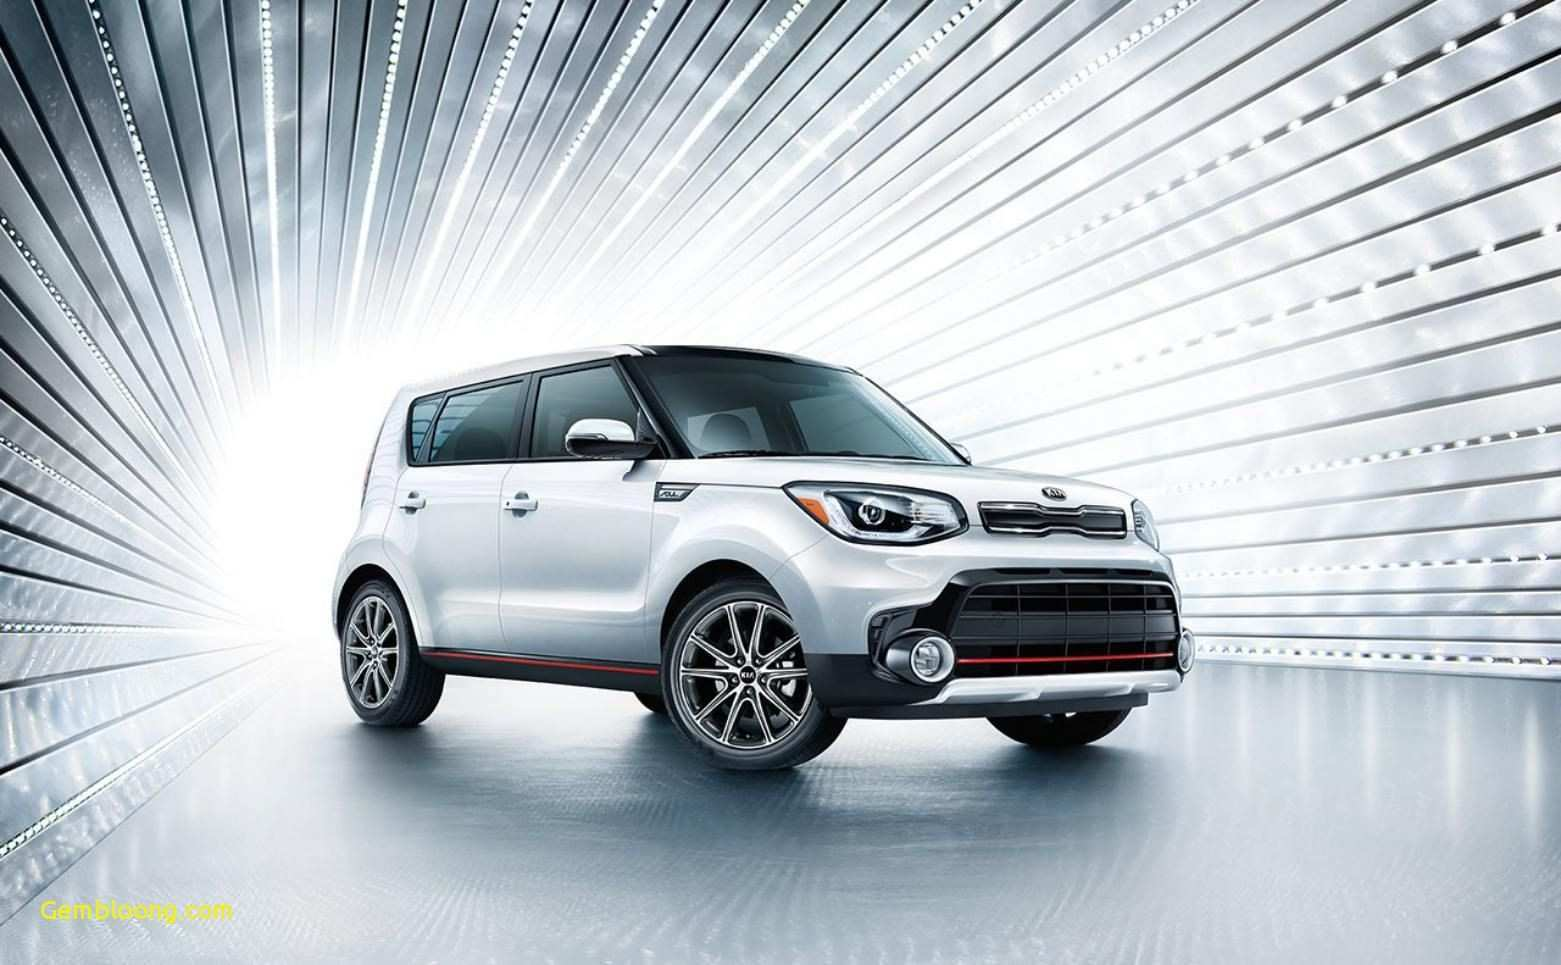 52 All New The Kia Trailster 2019 Redesign Performance and New Engine for The Kia Trailster 2019 Redesign